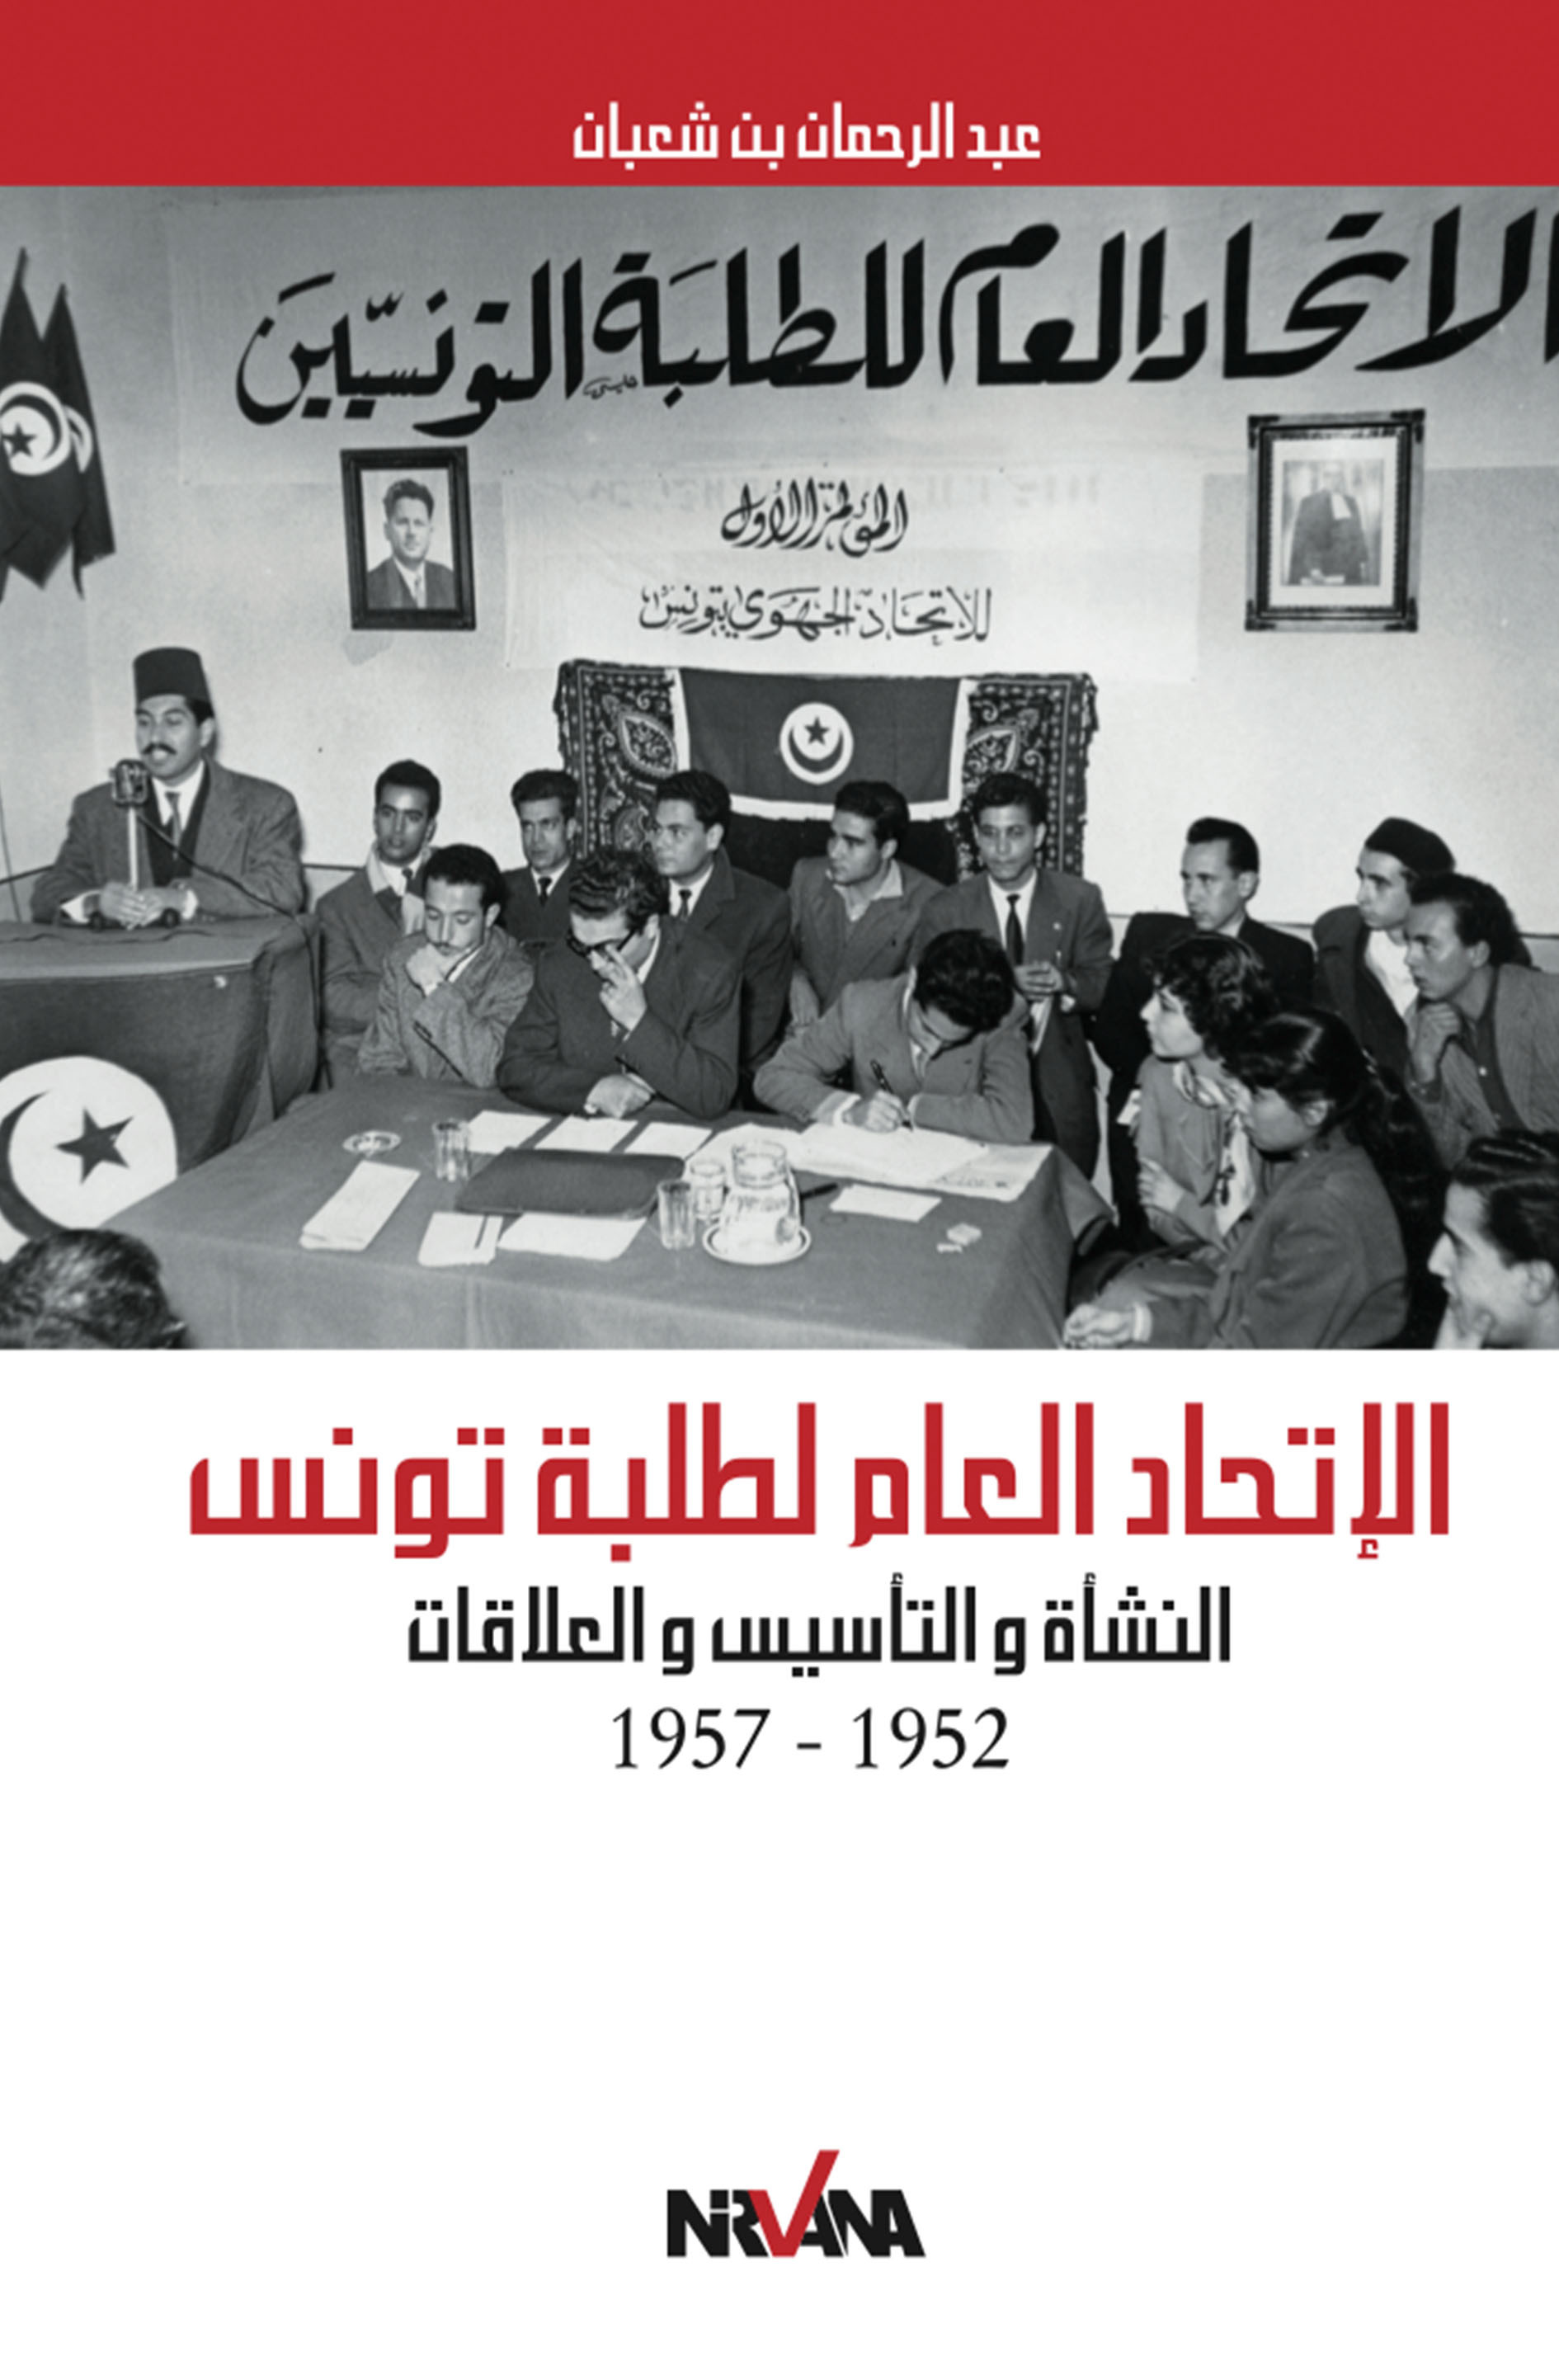 UNION GENERALE DES ETUDIANTS TUNISIENS 1952-1957